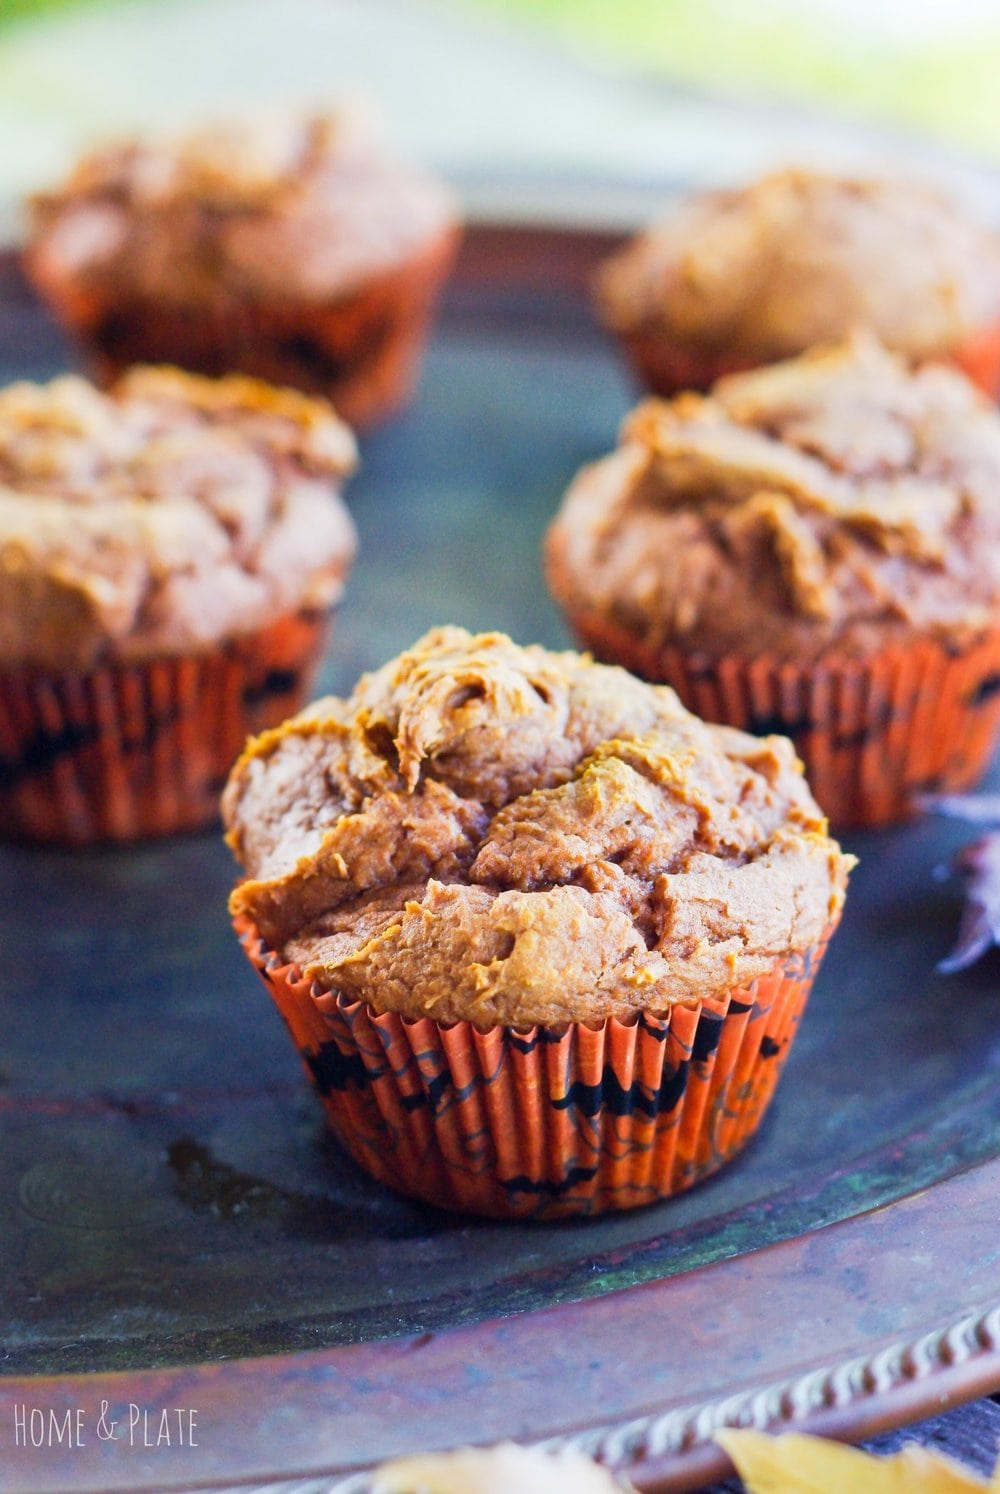 Allergy Safe Pumpkin Muffins ( 2 Ingredients)